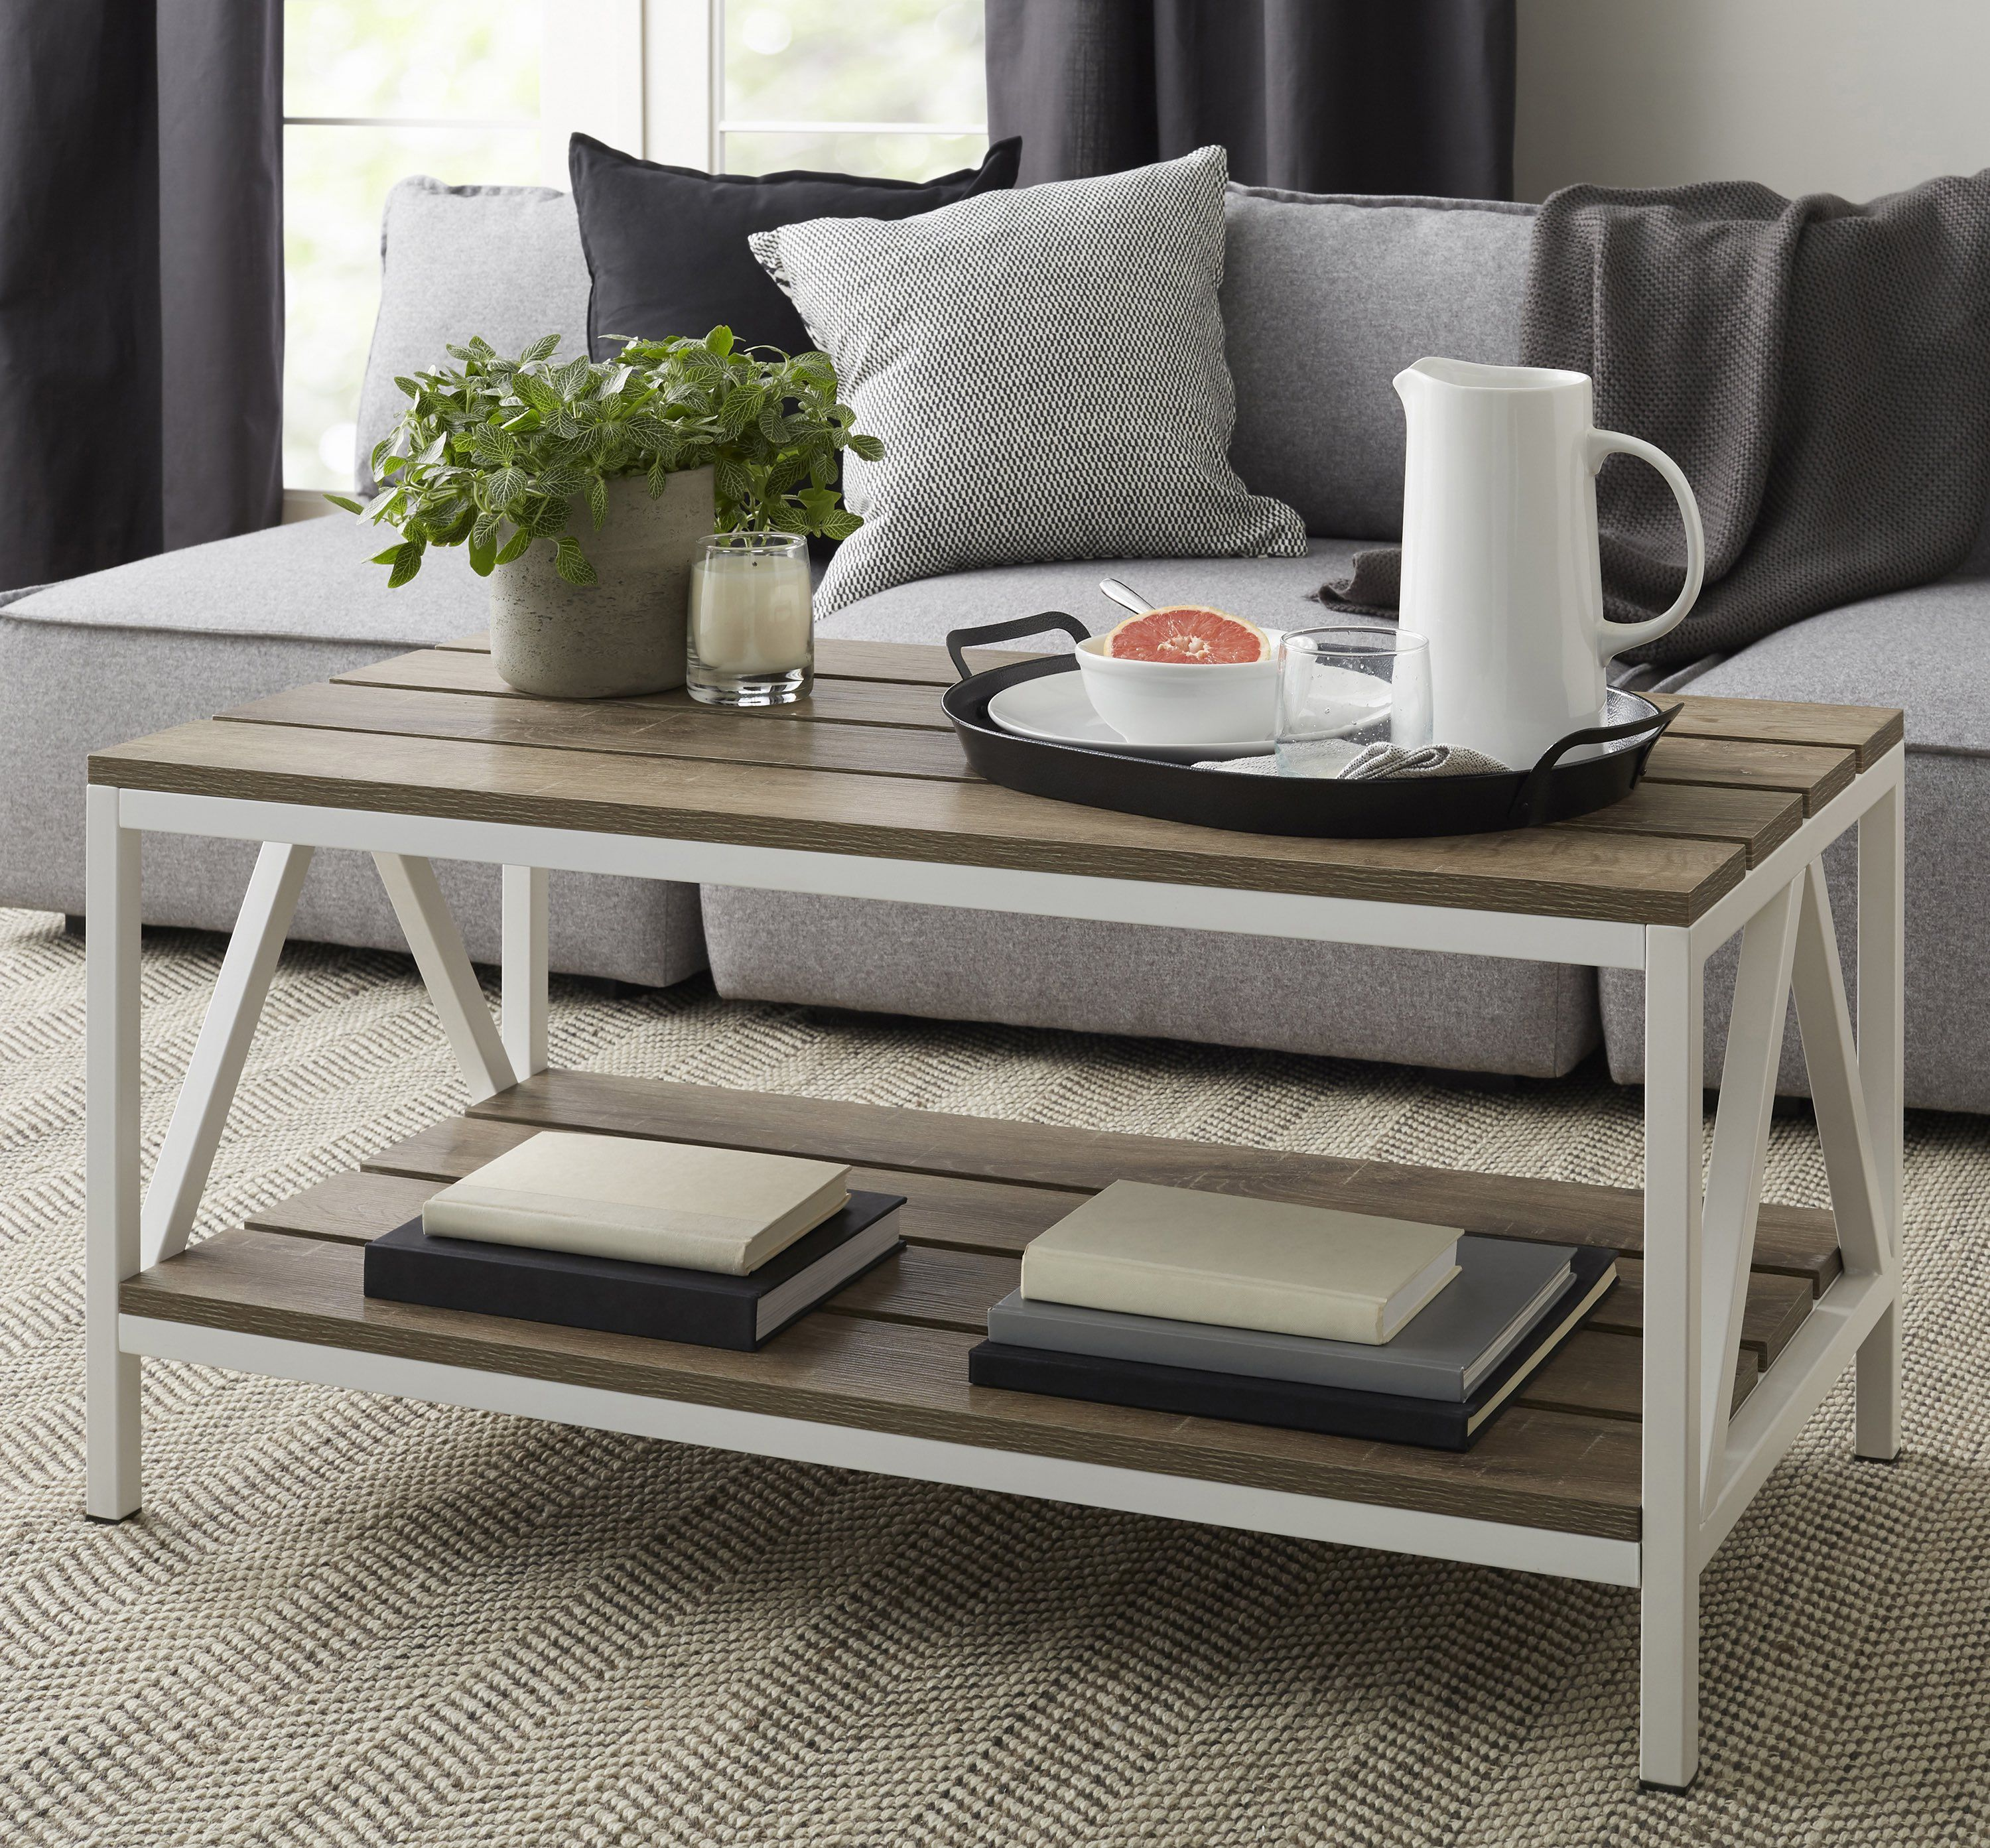 home coffee table wood coffee table rustic affordable on modern farmhouse patio furniture coffee tables id=60391